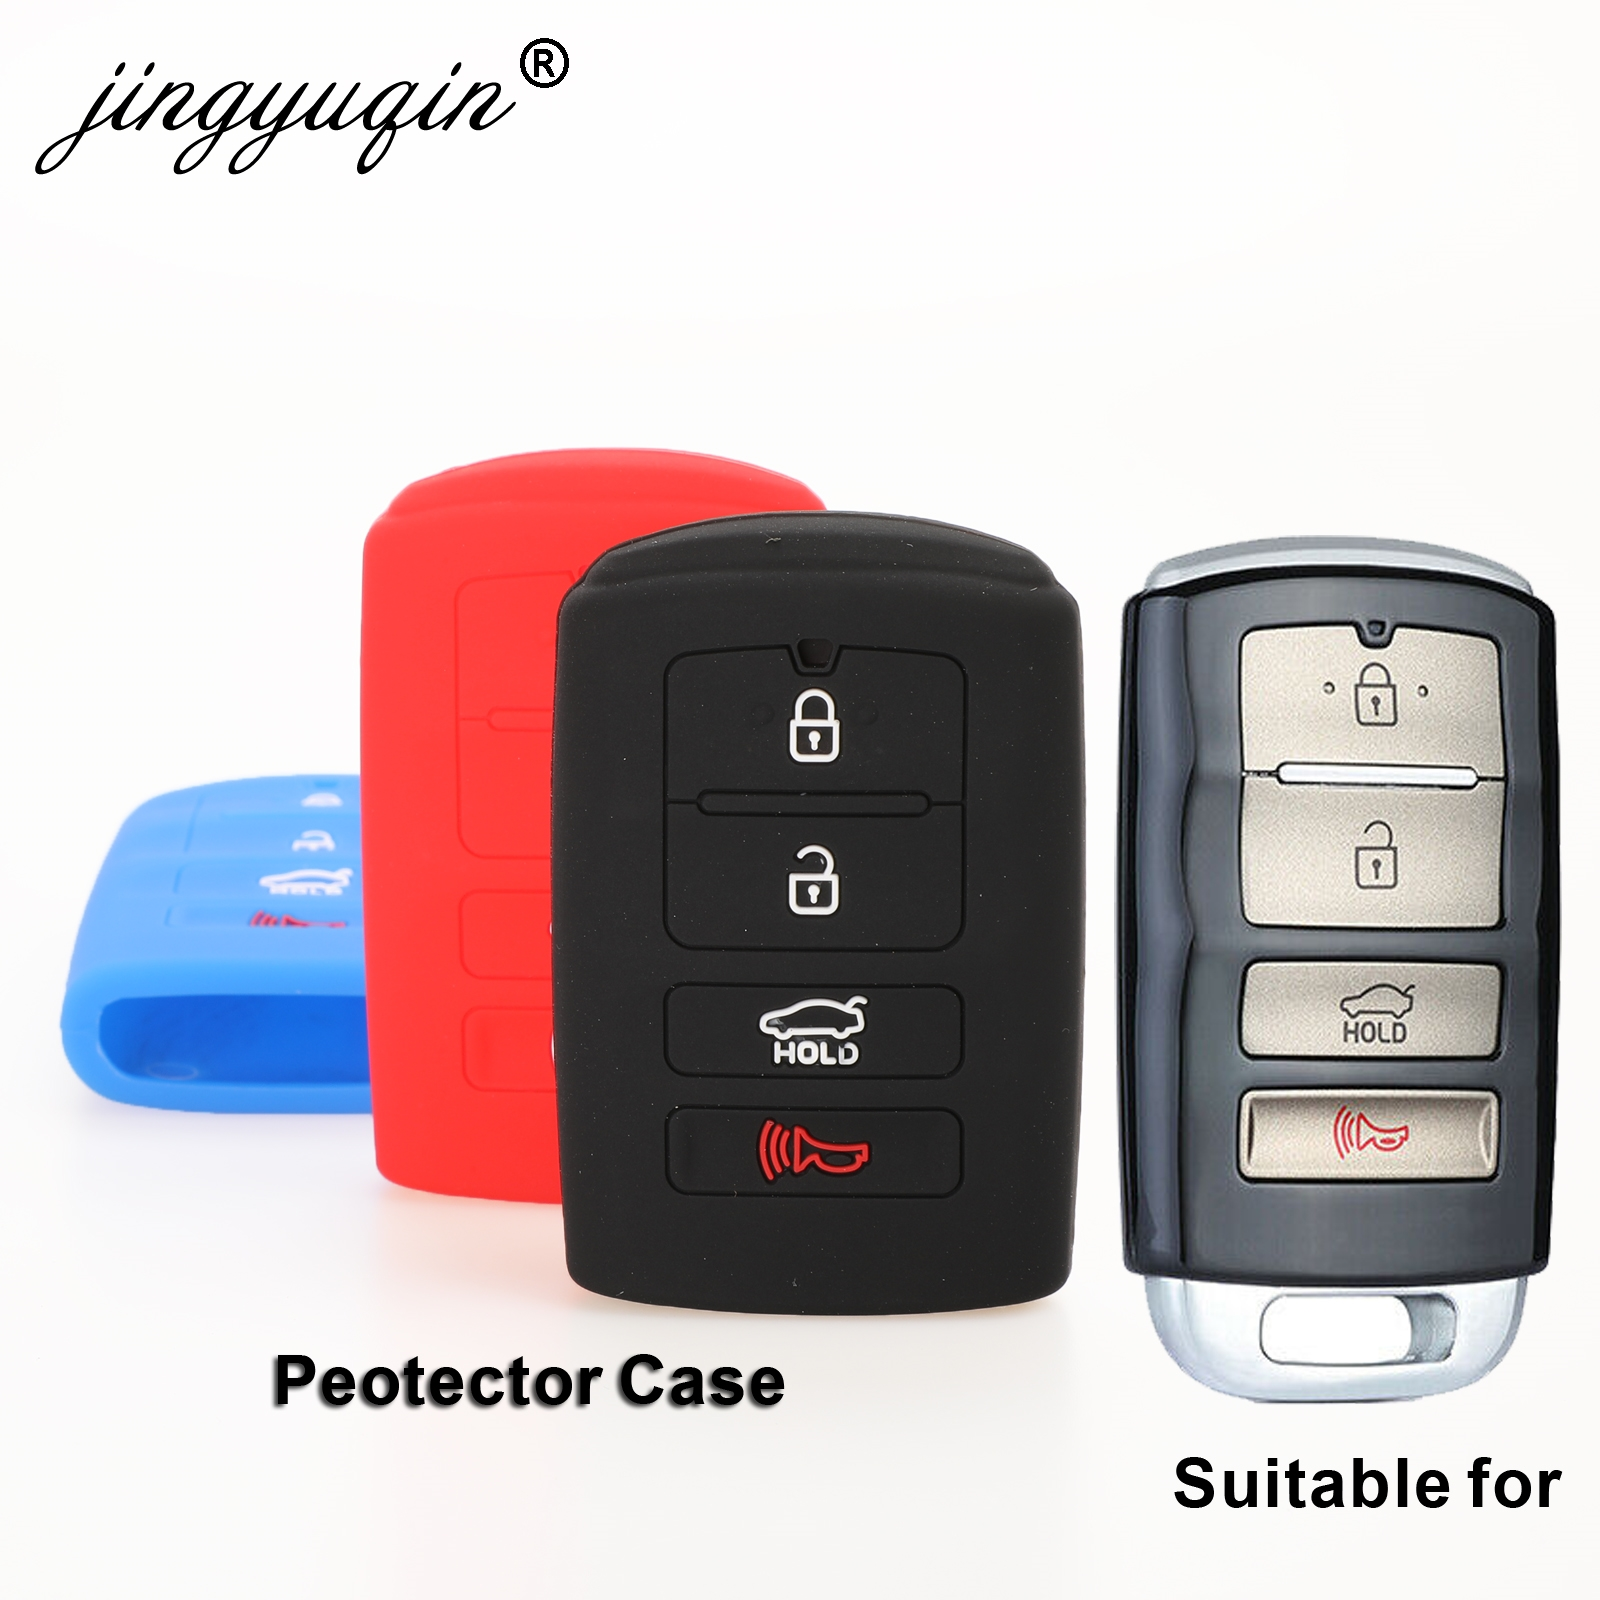 Jingyuqin Remote 4B Car Key Case Silicone For Kia Sorento K900 New K7 Cadenza 2017 2018 2019 Holder Styling Smart